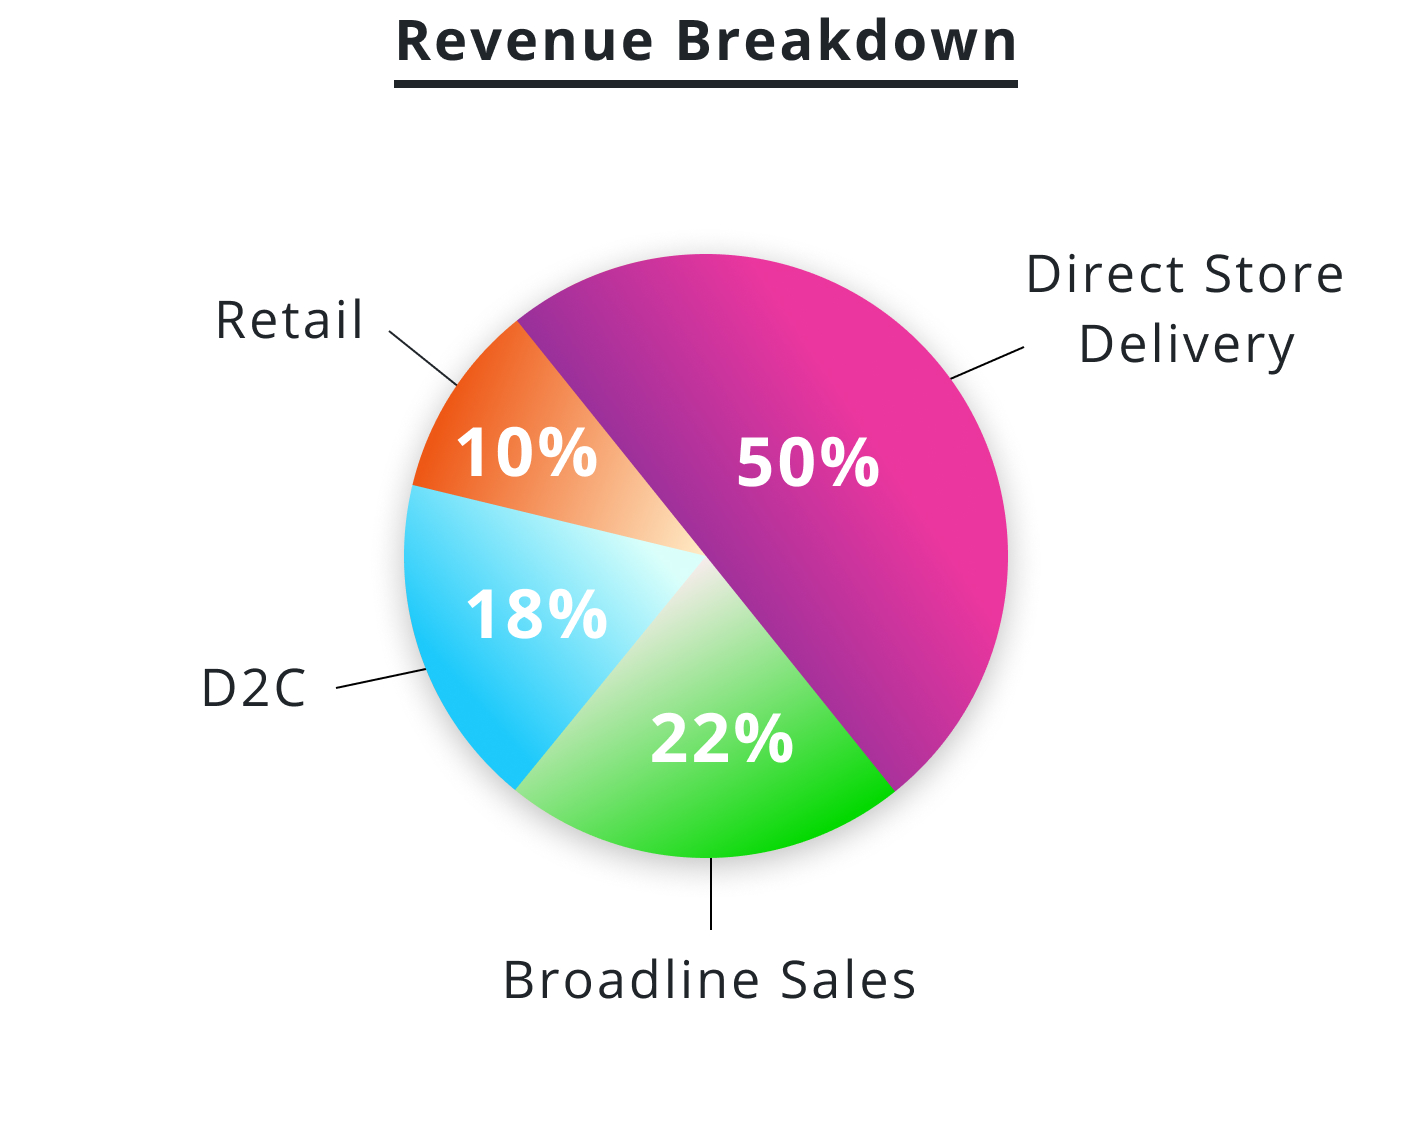 10% Retail, 18% D2C, 22% Broadline, 50% Direct Store Delivery